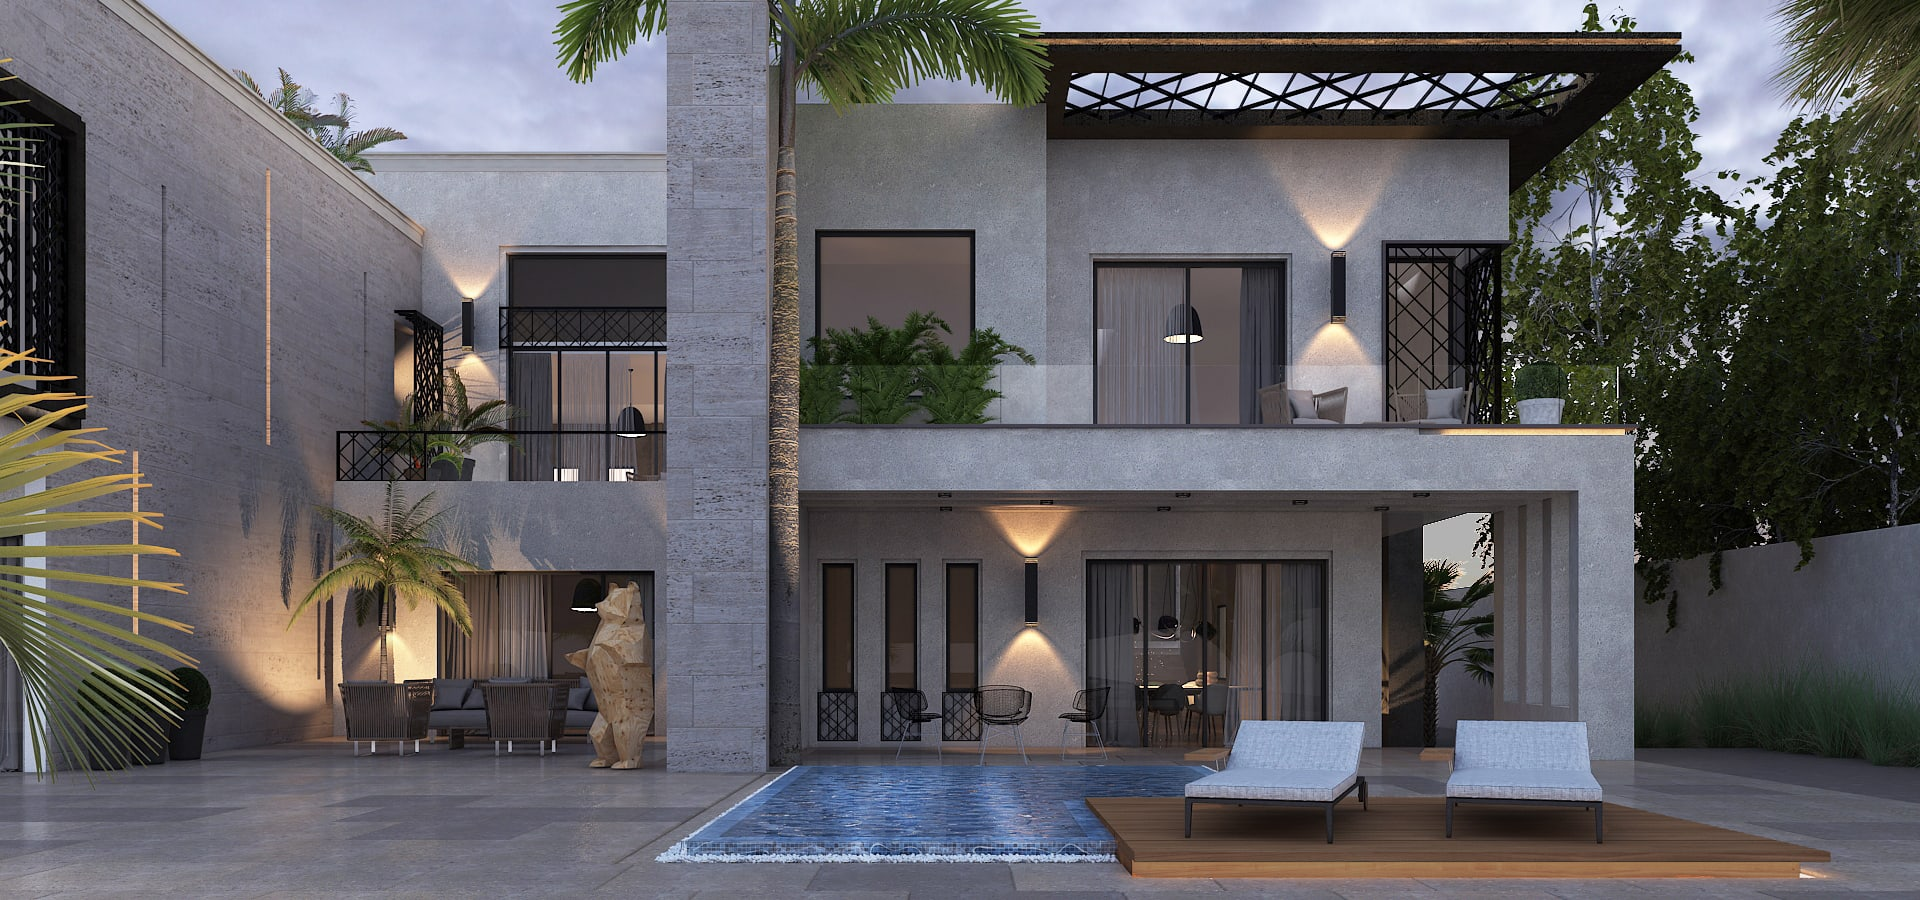 Residential villa complex by sia design studio homify for Multi family house plans with courtyard